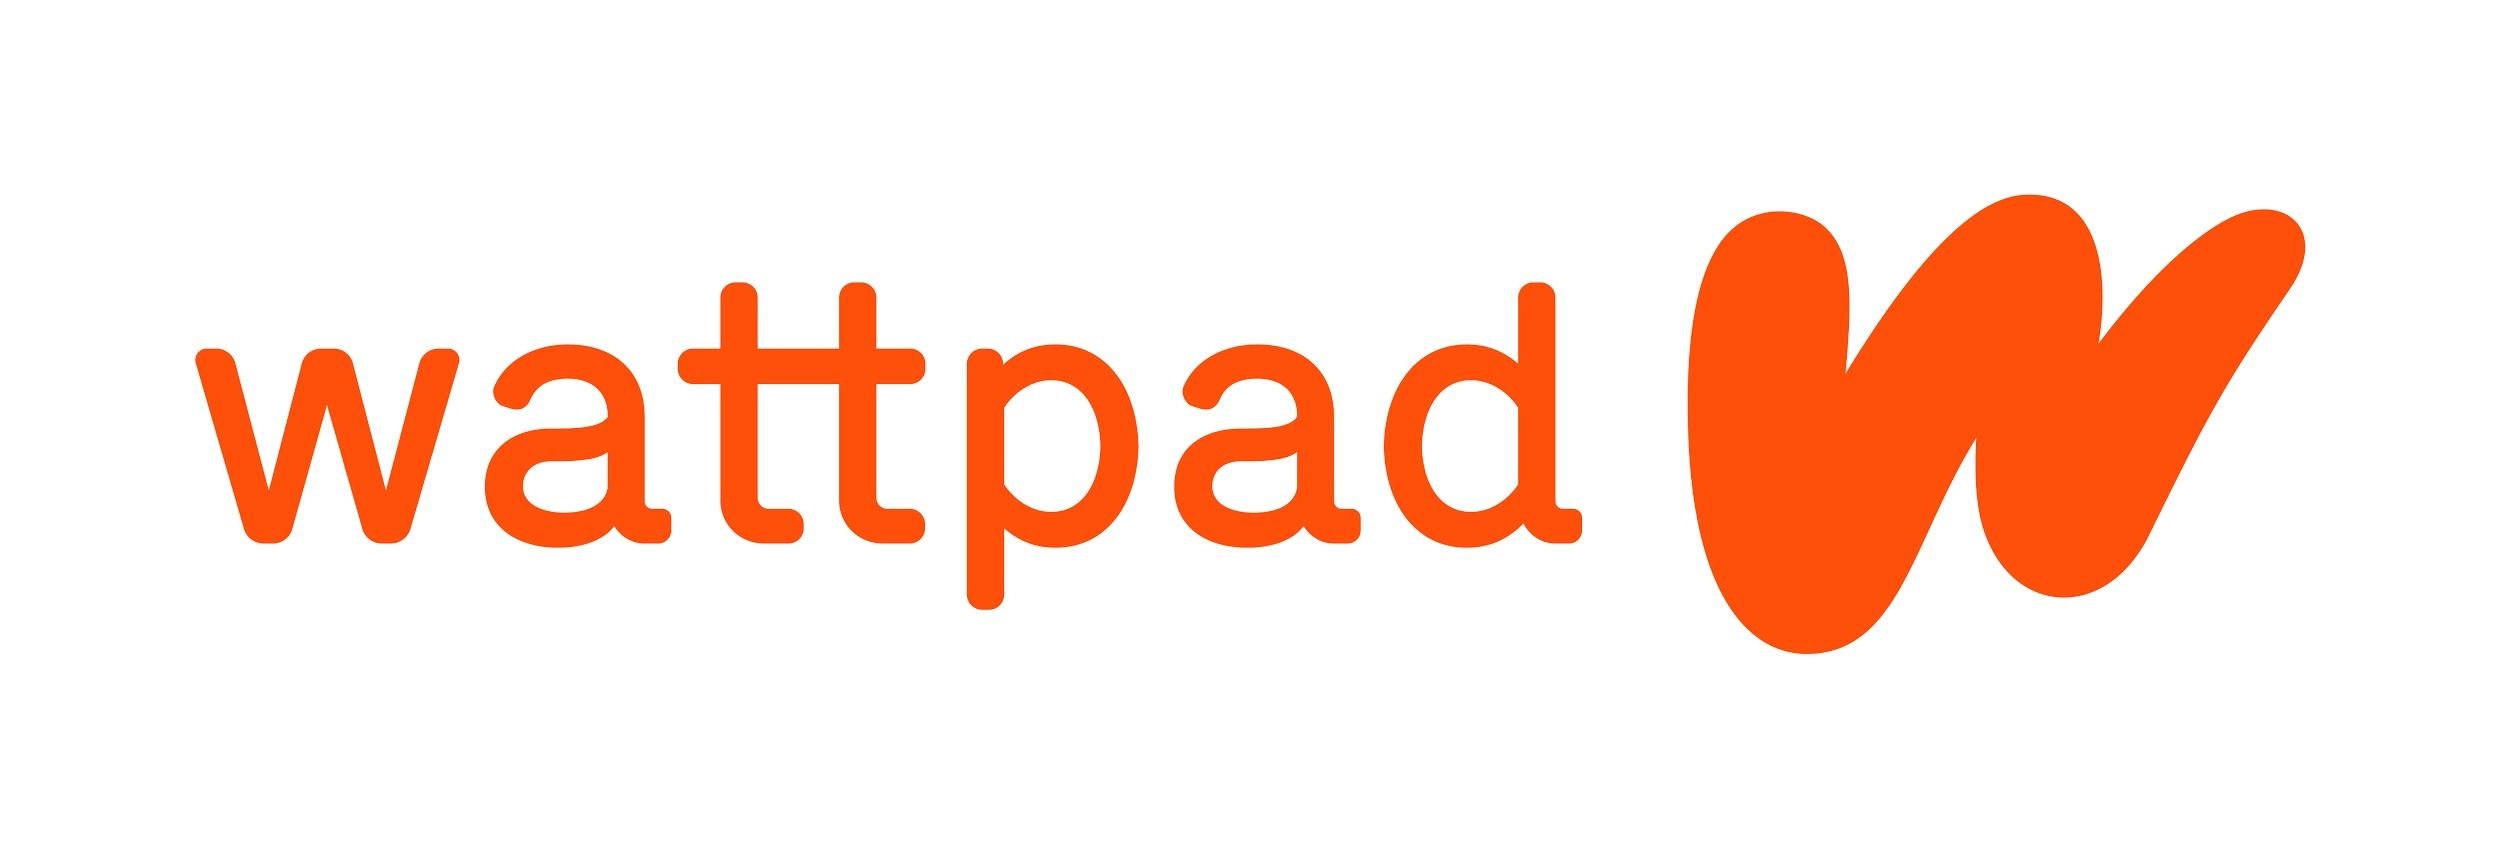 Why Wattpad is Underrated – by Aura Singh – Grover Middle